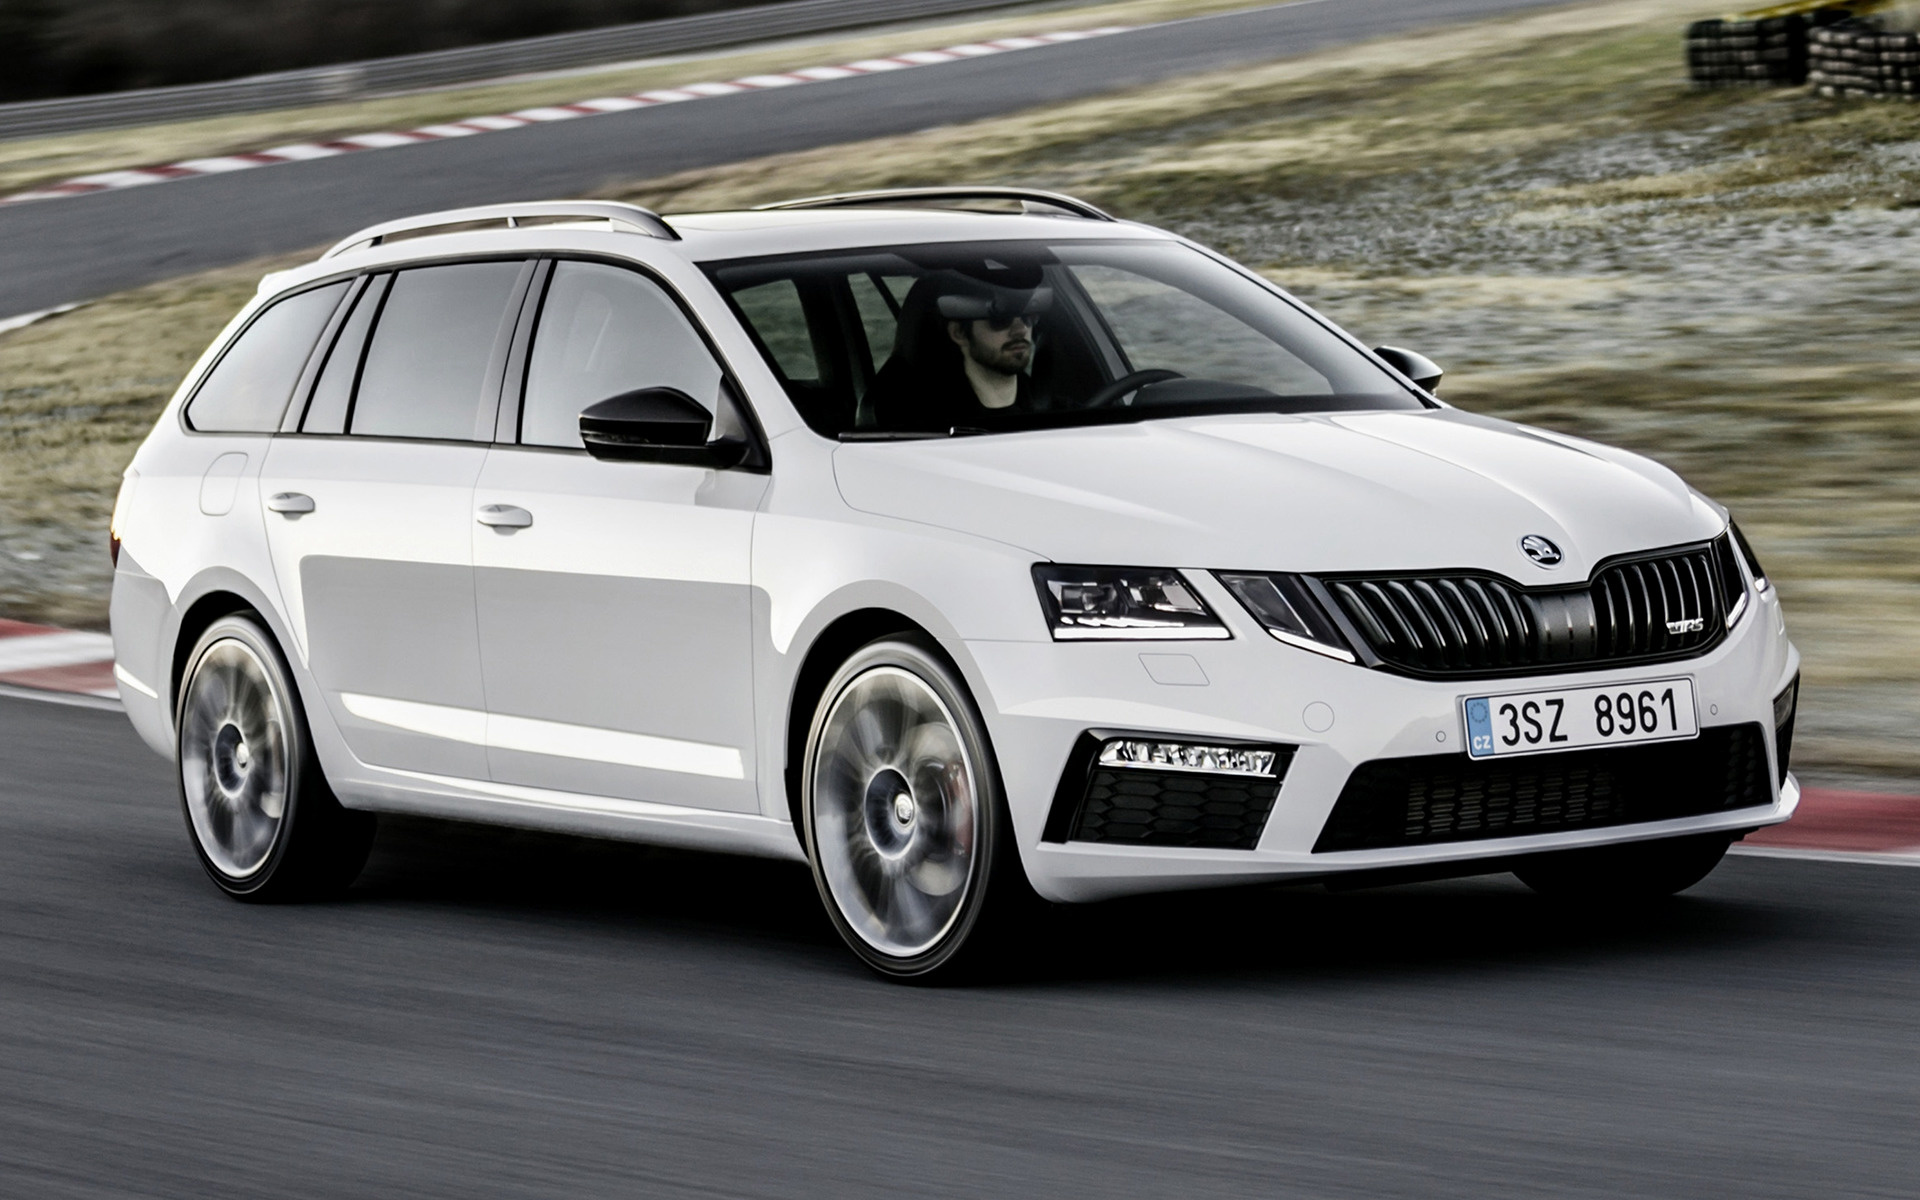 skoda octavia rs combi 2017 wallpapers and hd images. Black Bedroom Furniture Sets. Home Design Ideas